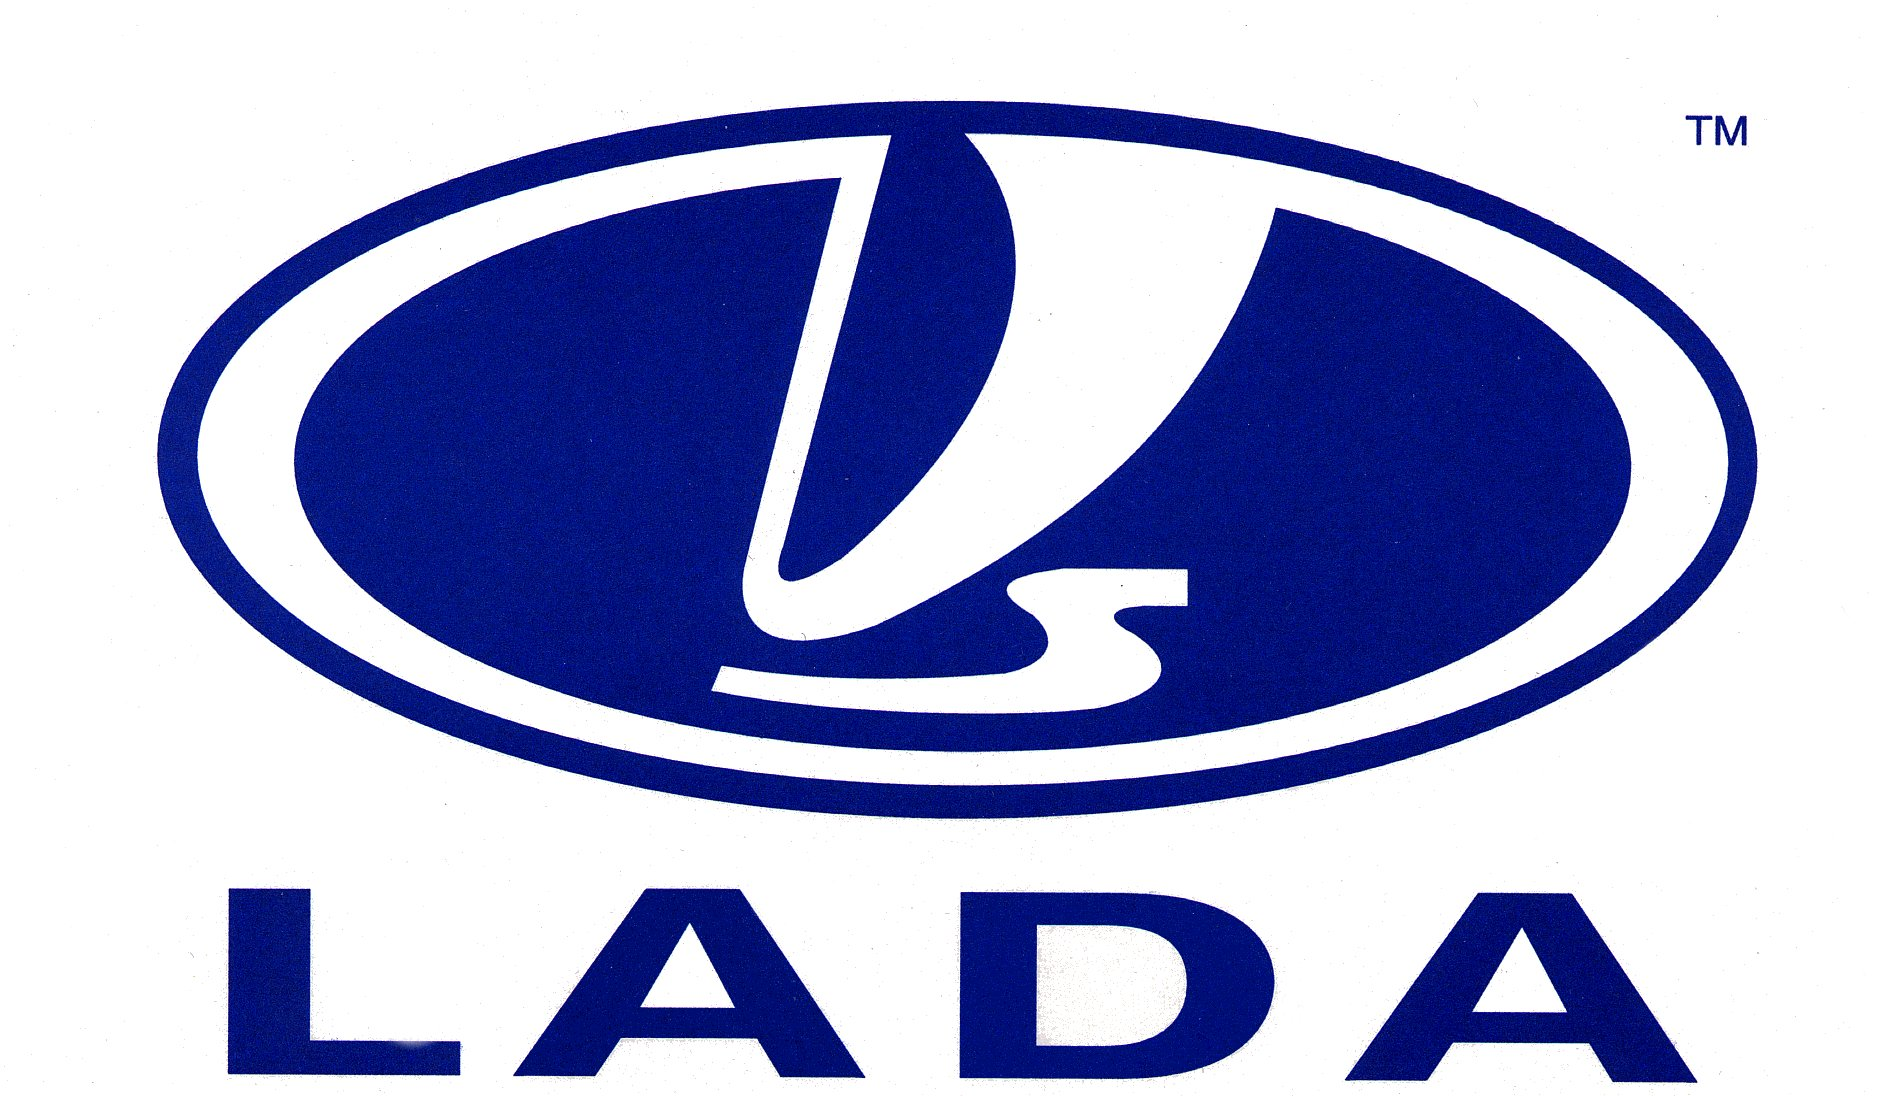 LADA logo wallpapers HD